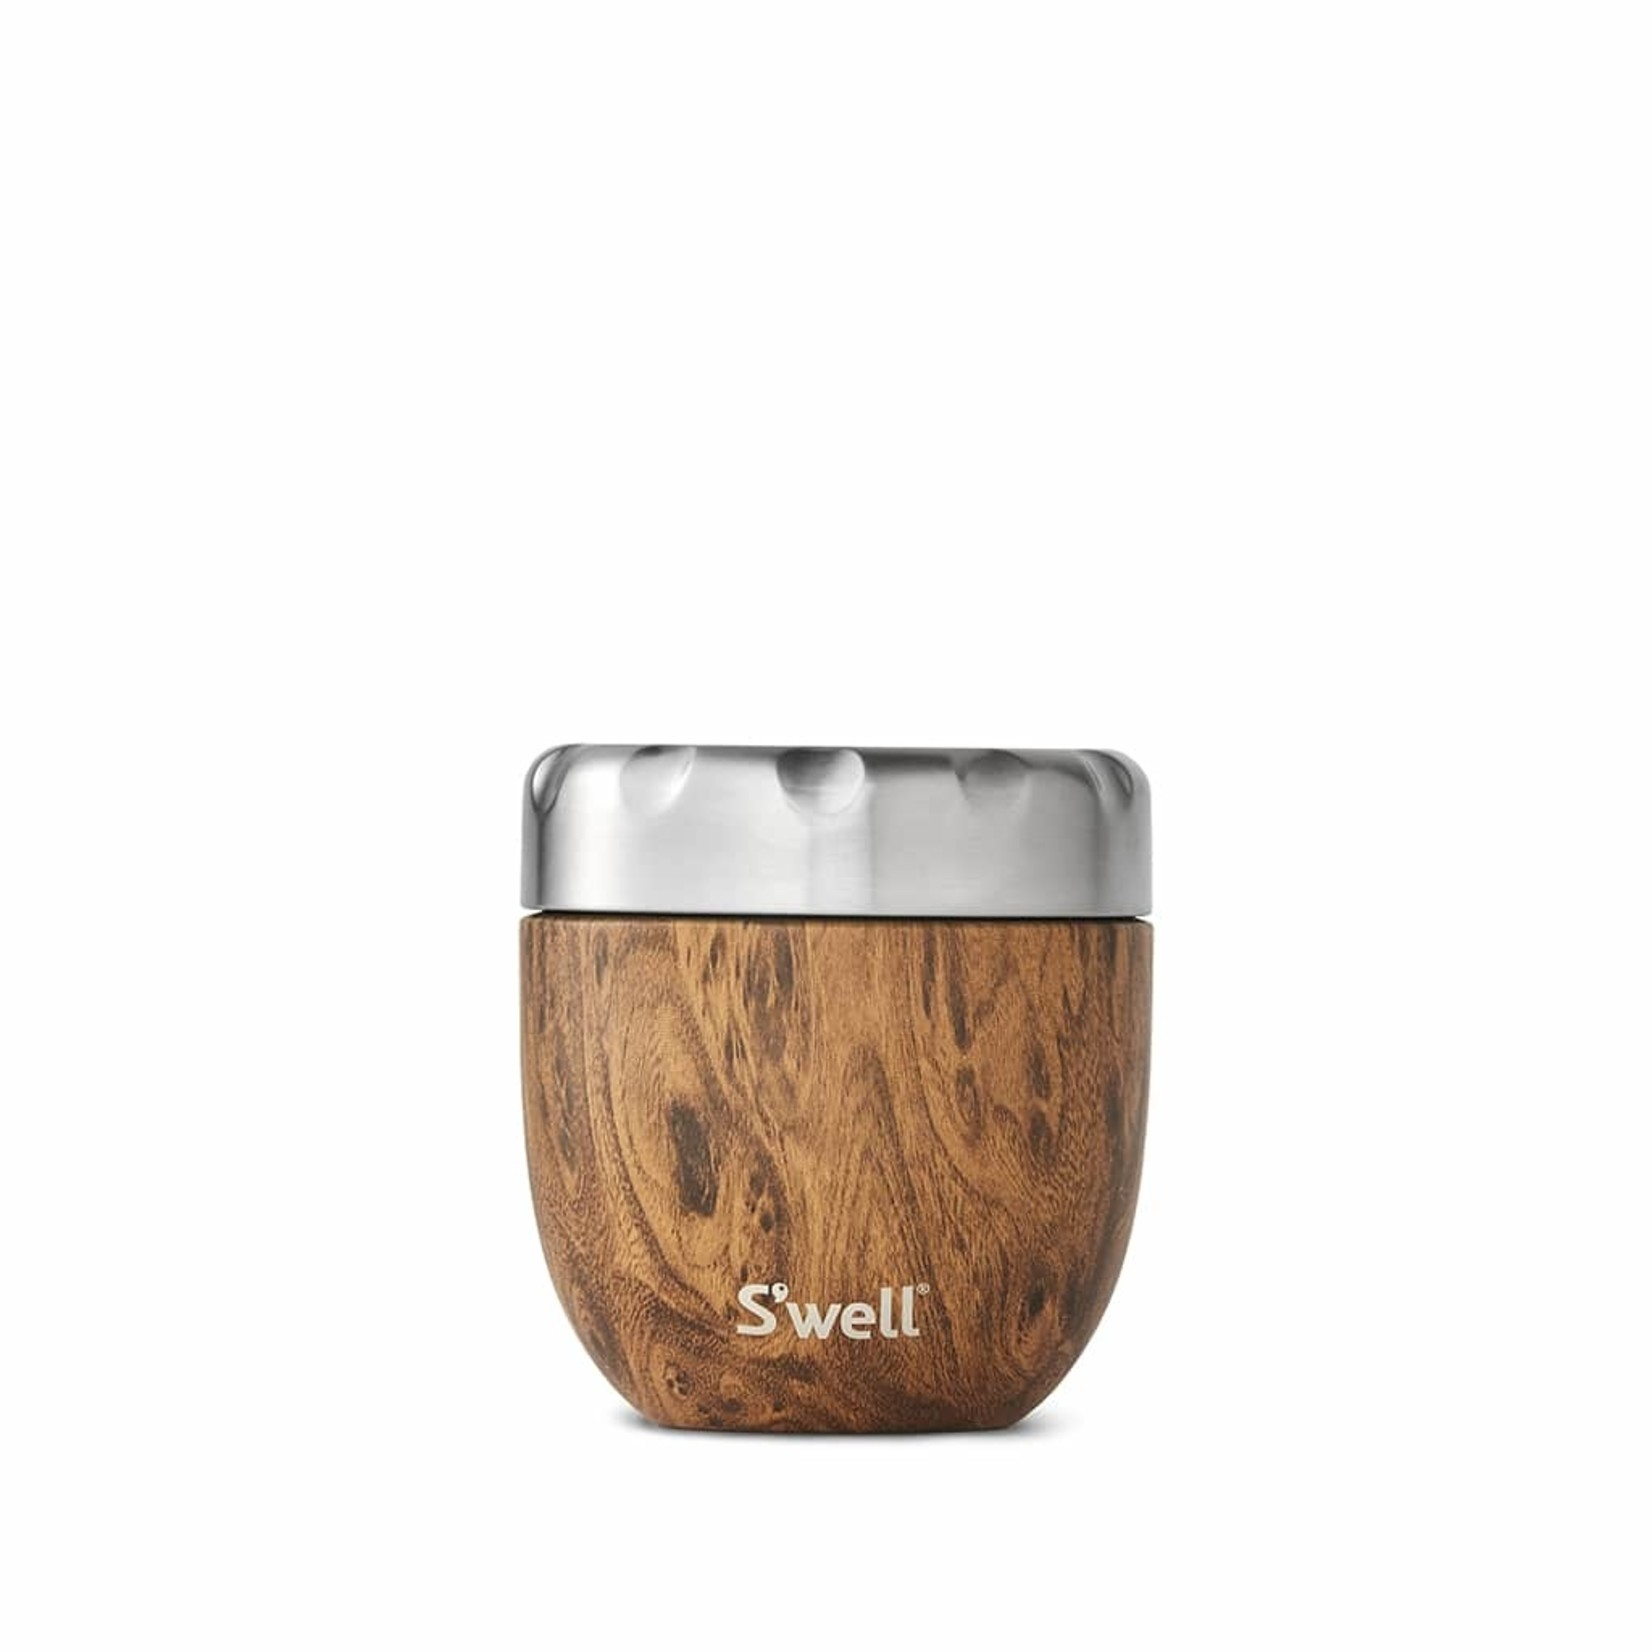 S'well S'well Bottle Eats Food Container-TEAKWOOD-16oz